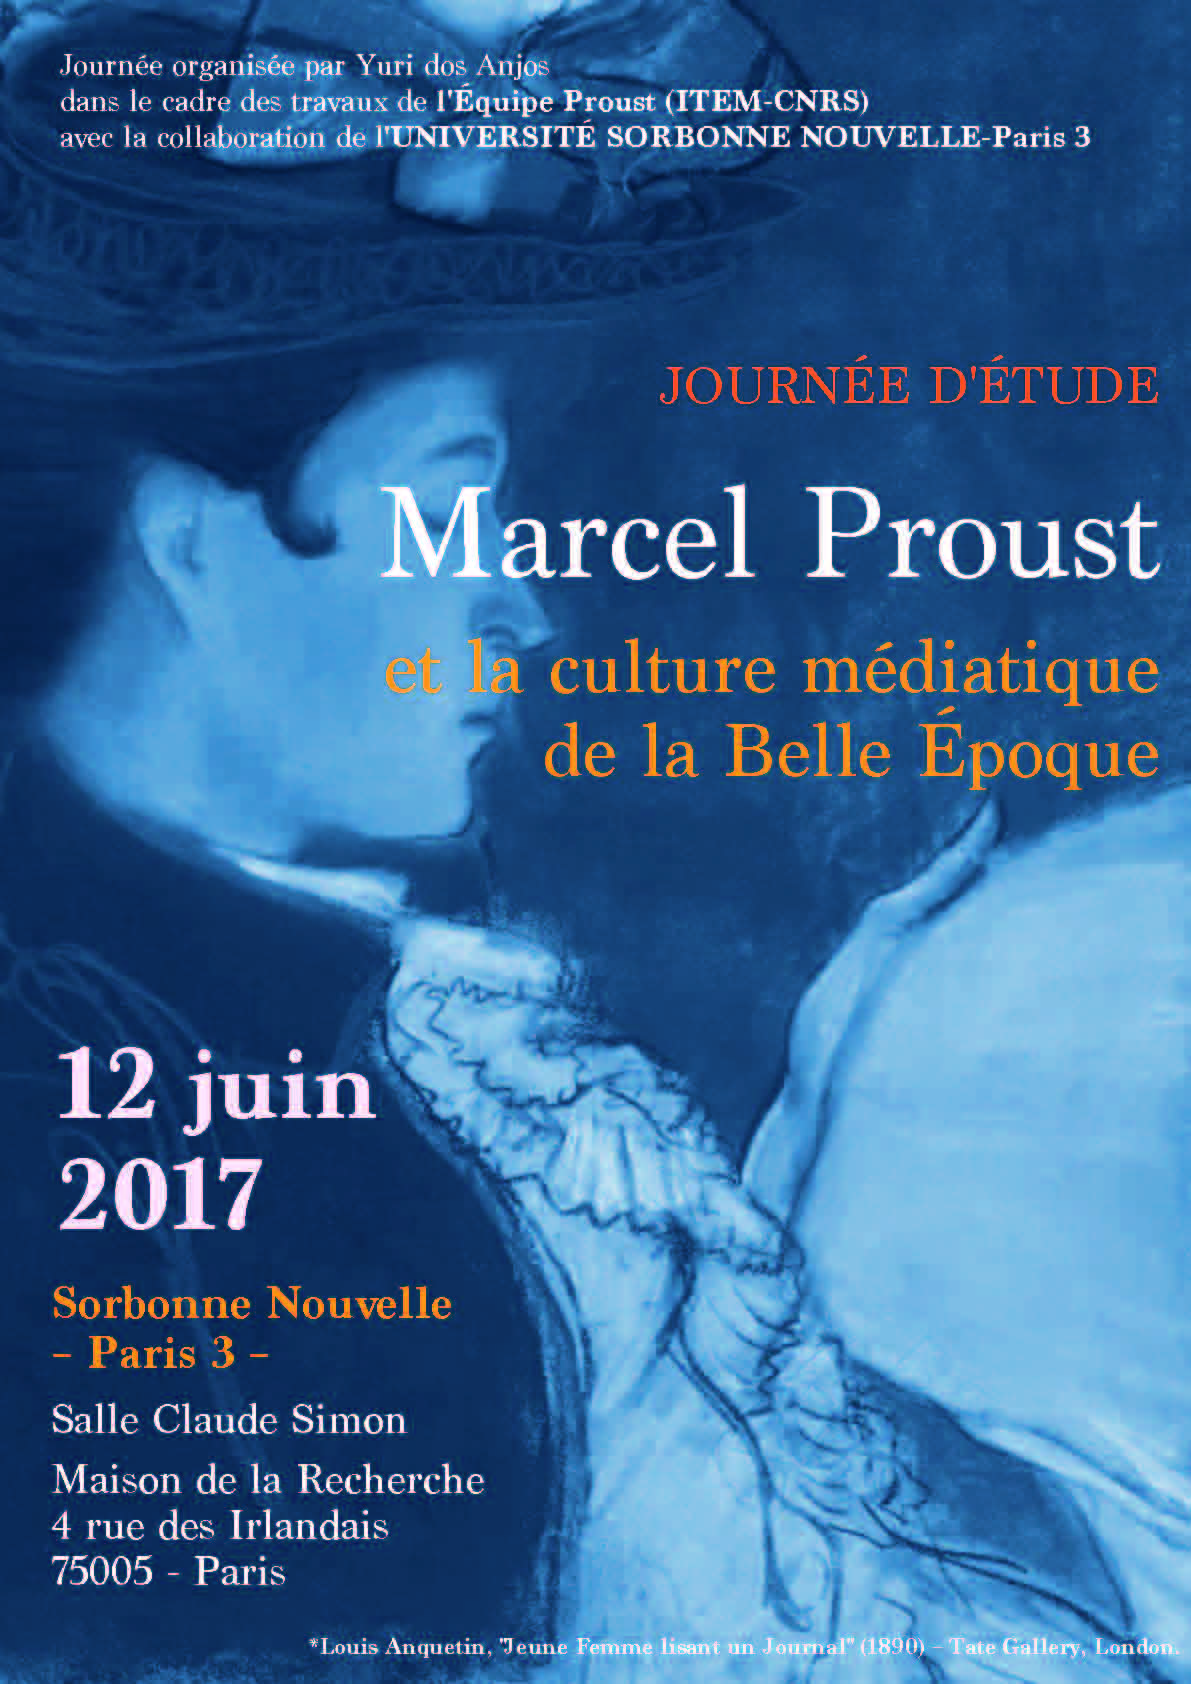 Marcel Proust et la culture médiatique de la Belle Époque (Paris 3)